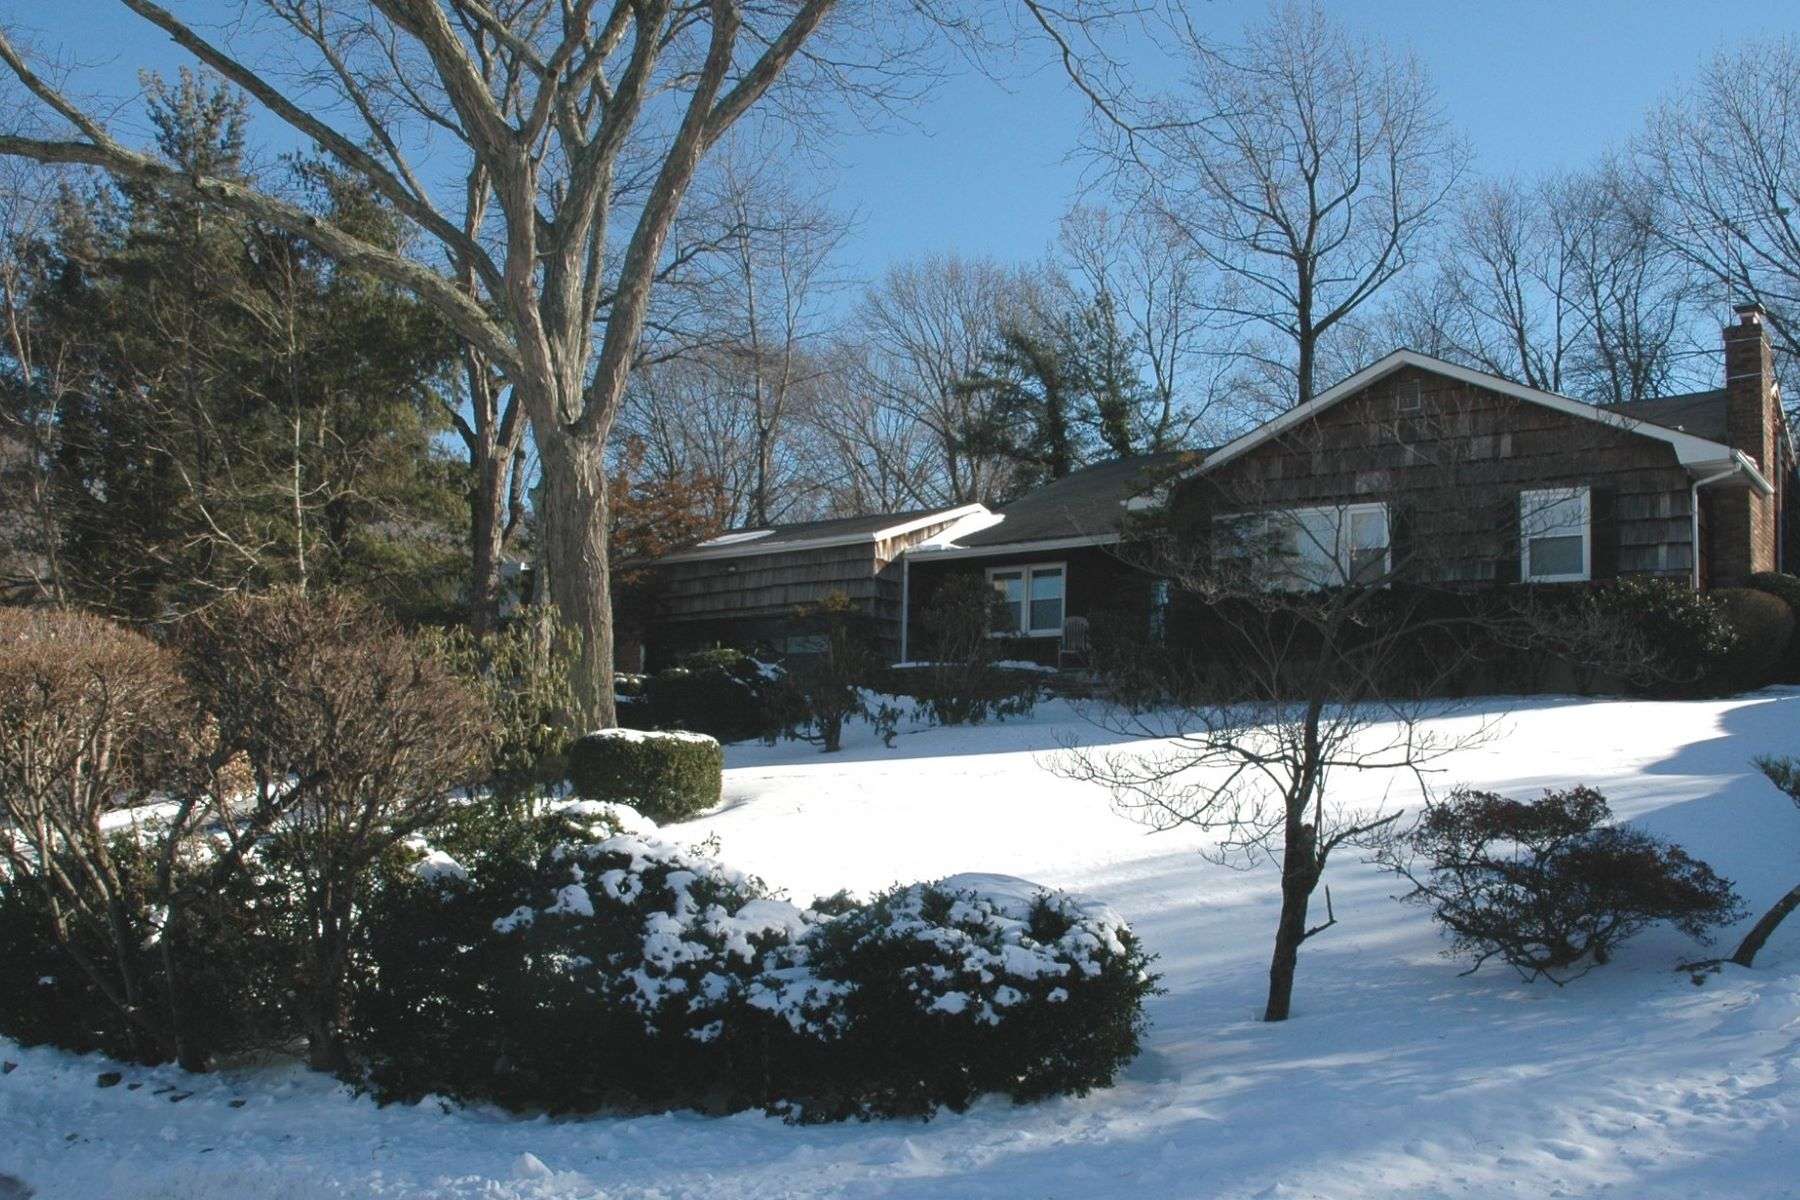 Single Family Home for Sale at 37 Woodland Rd , Roslyn, NY 11576 37 Woodland Rd, Roslyn, New York, 11576 United States